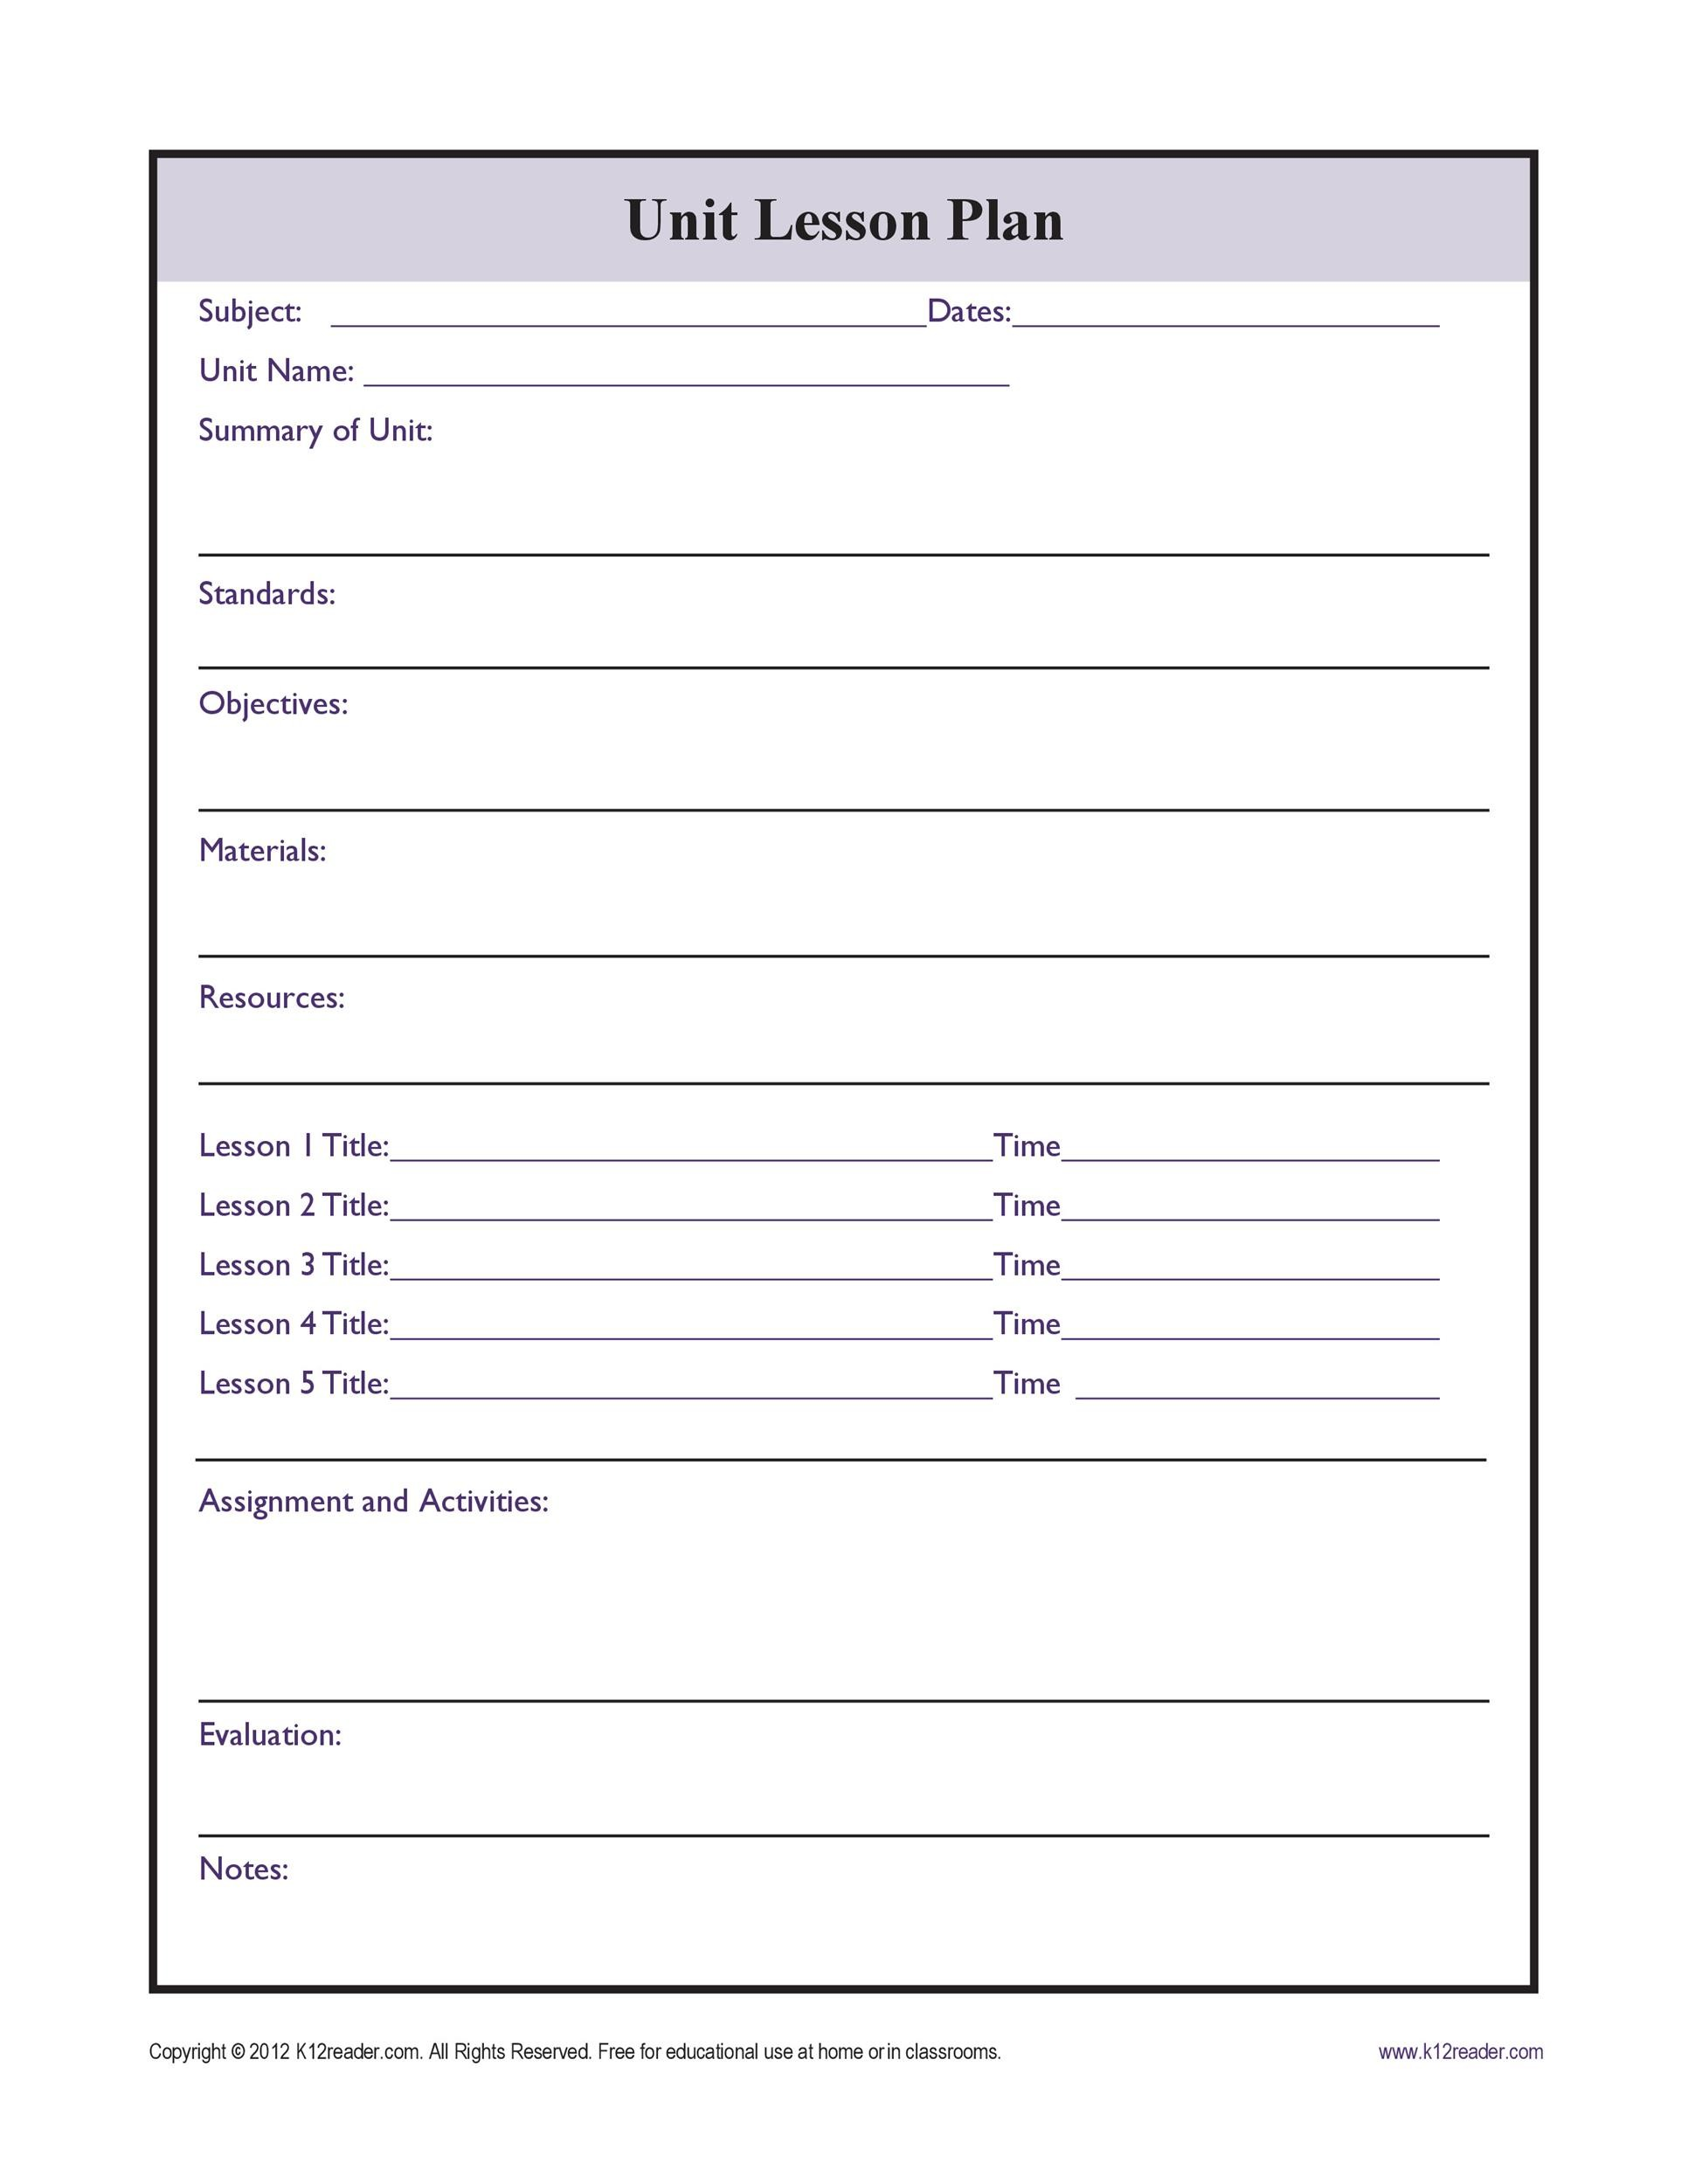 Free unit plan template 09